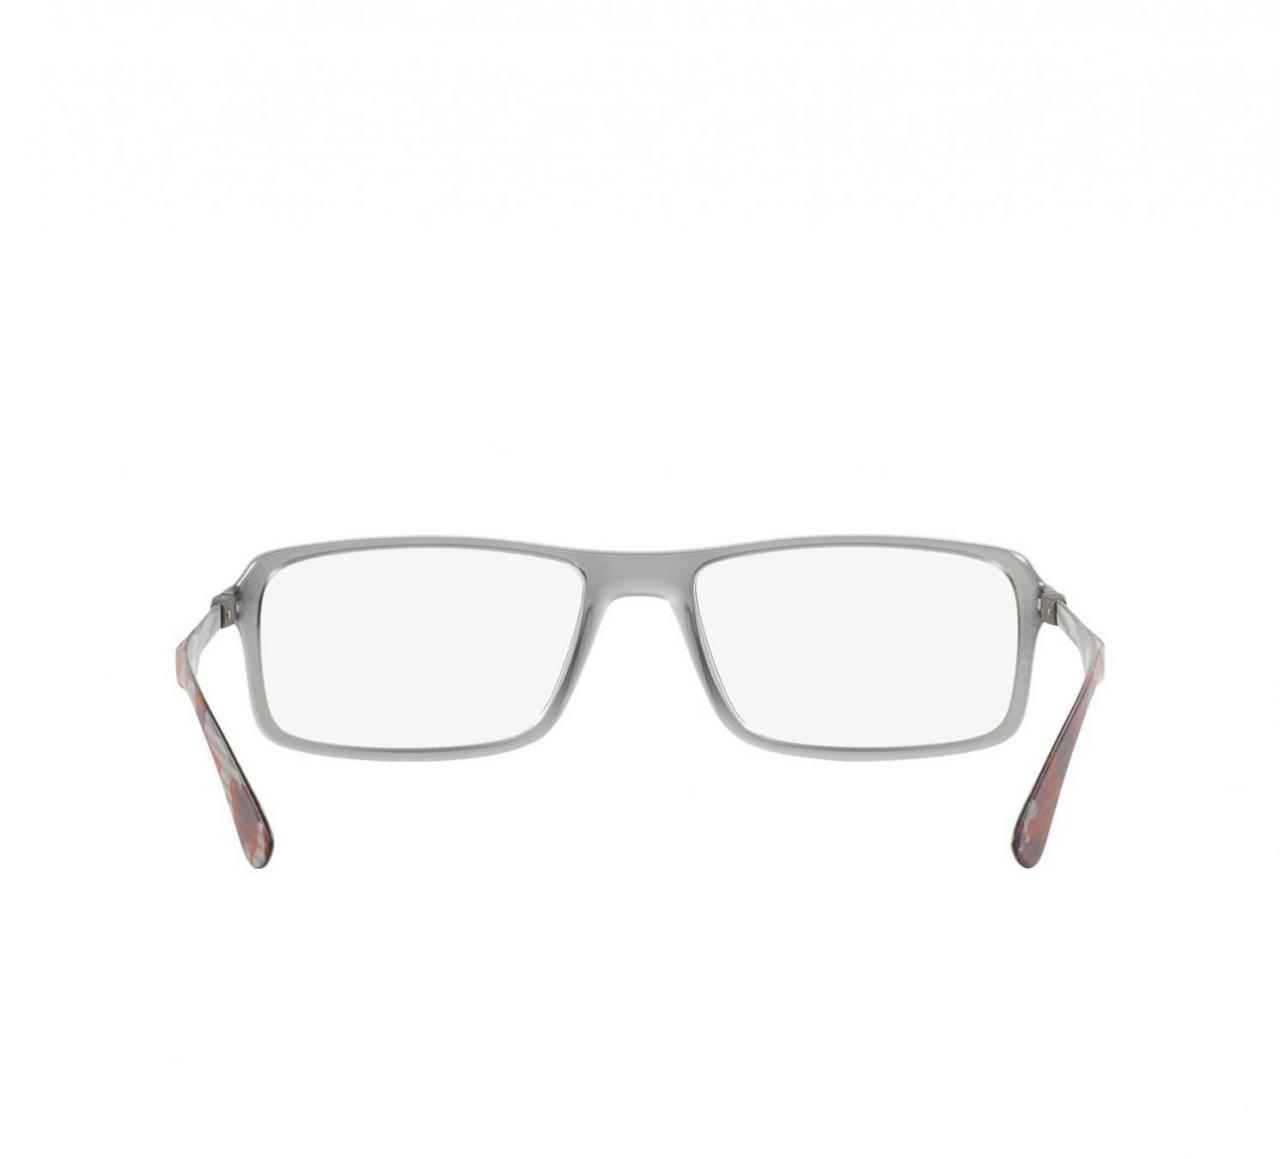 Ray Ban Eyeglasses RB8902 5481 Rx-ABLE